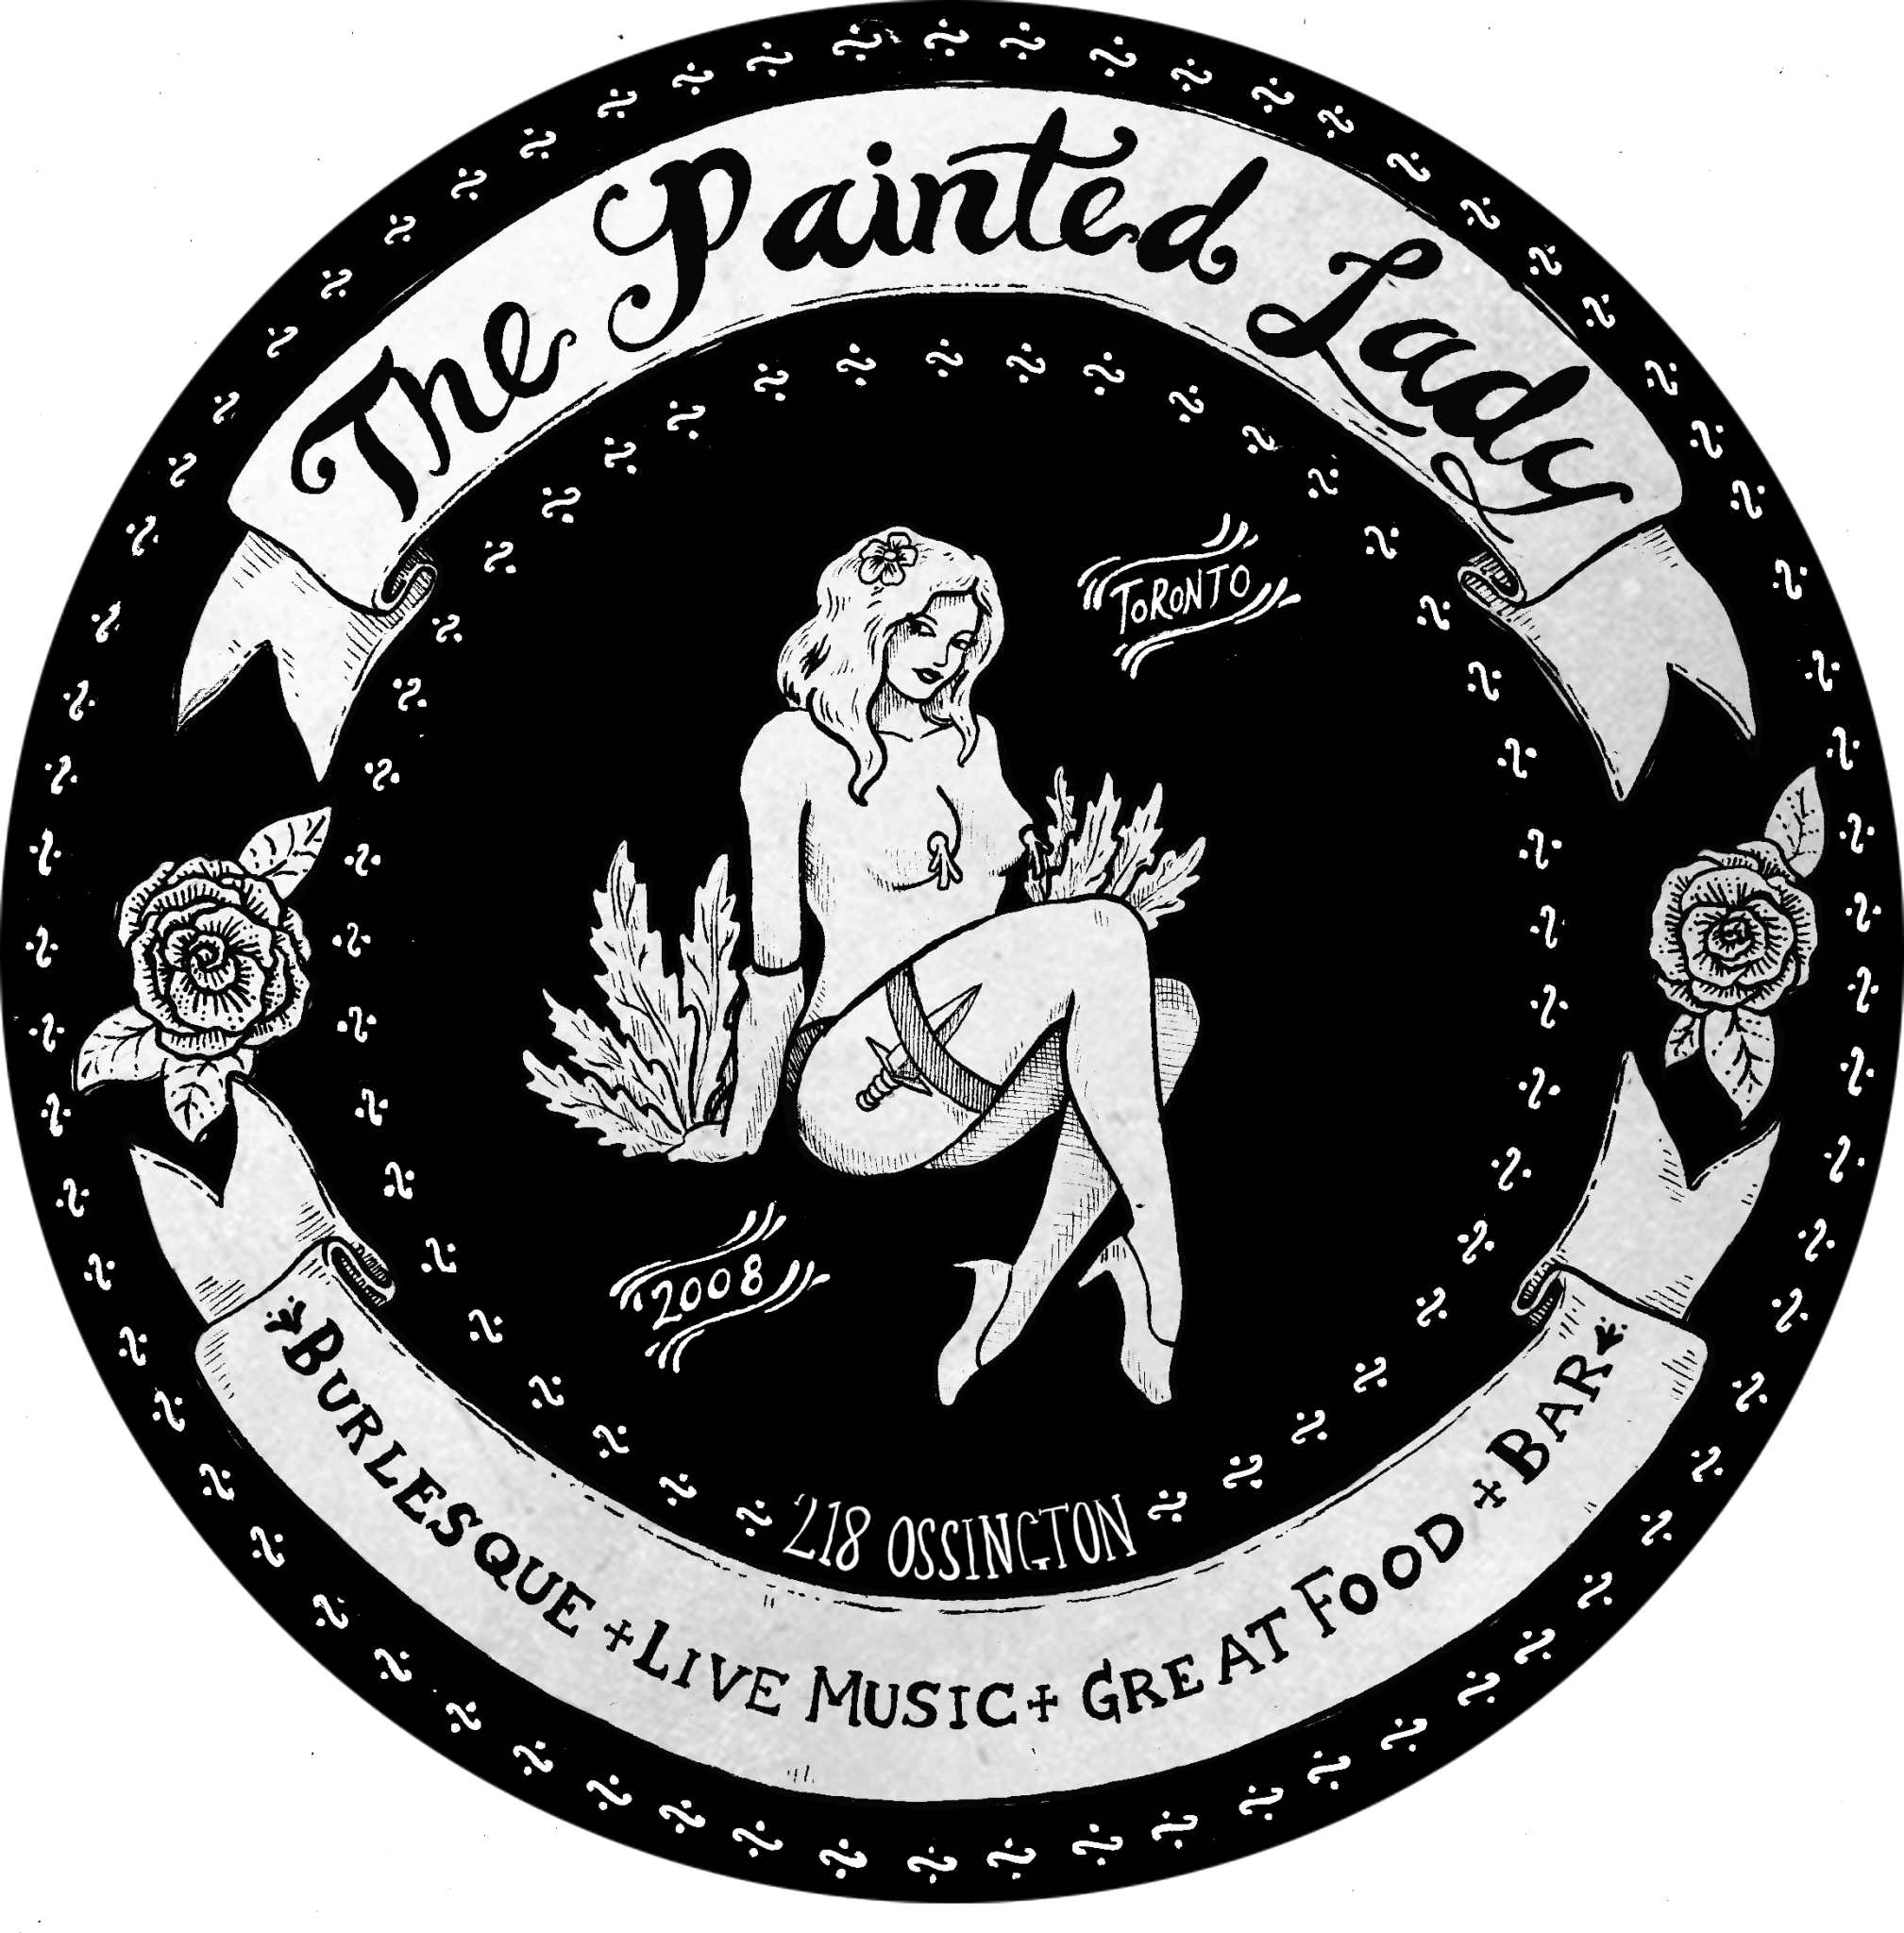 The Painted Lady: Rock'nRoll Funk'n'Soul Burlesque & Absinthe House